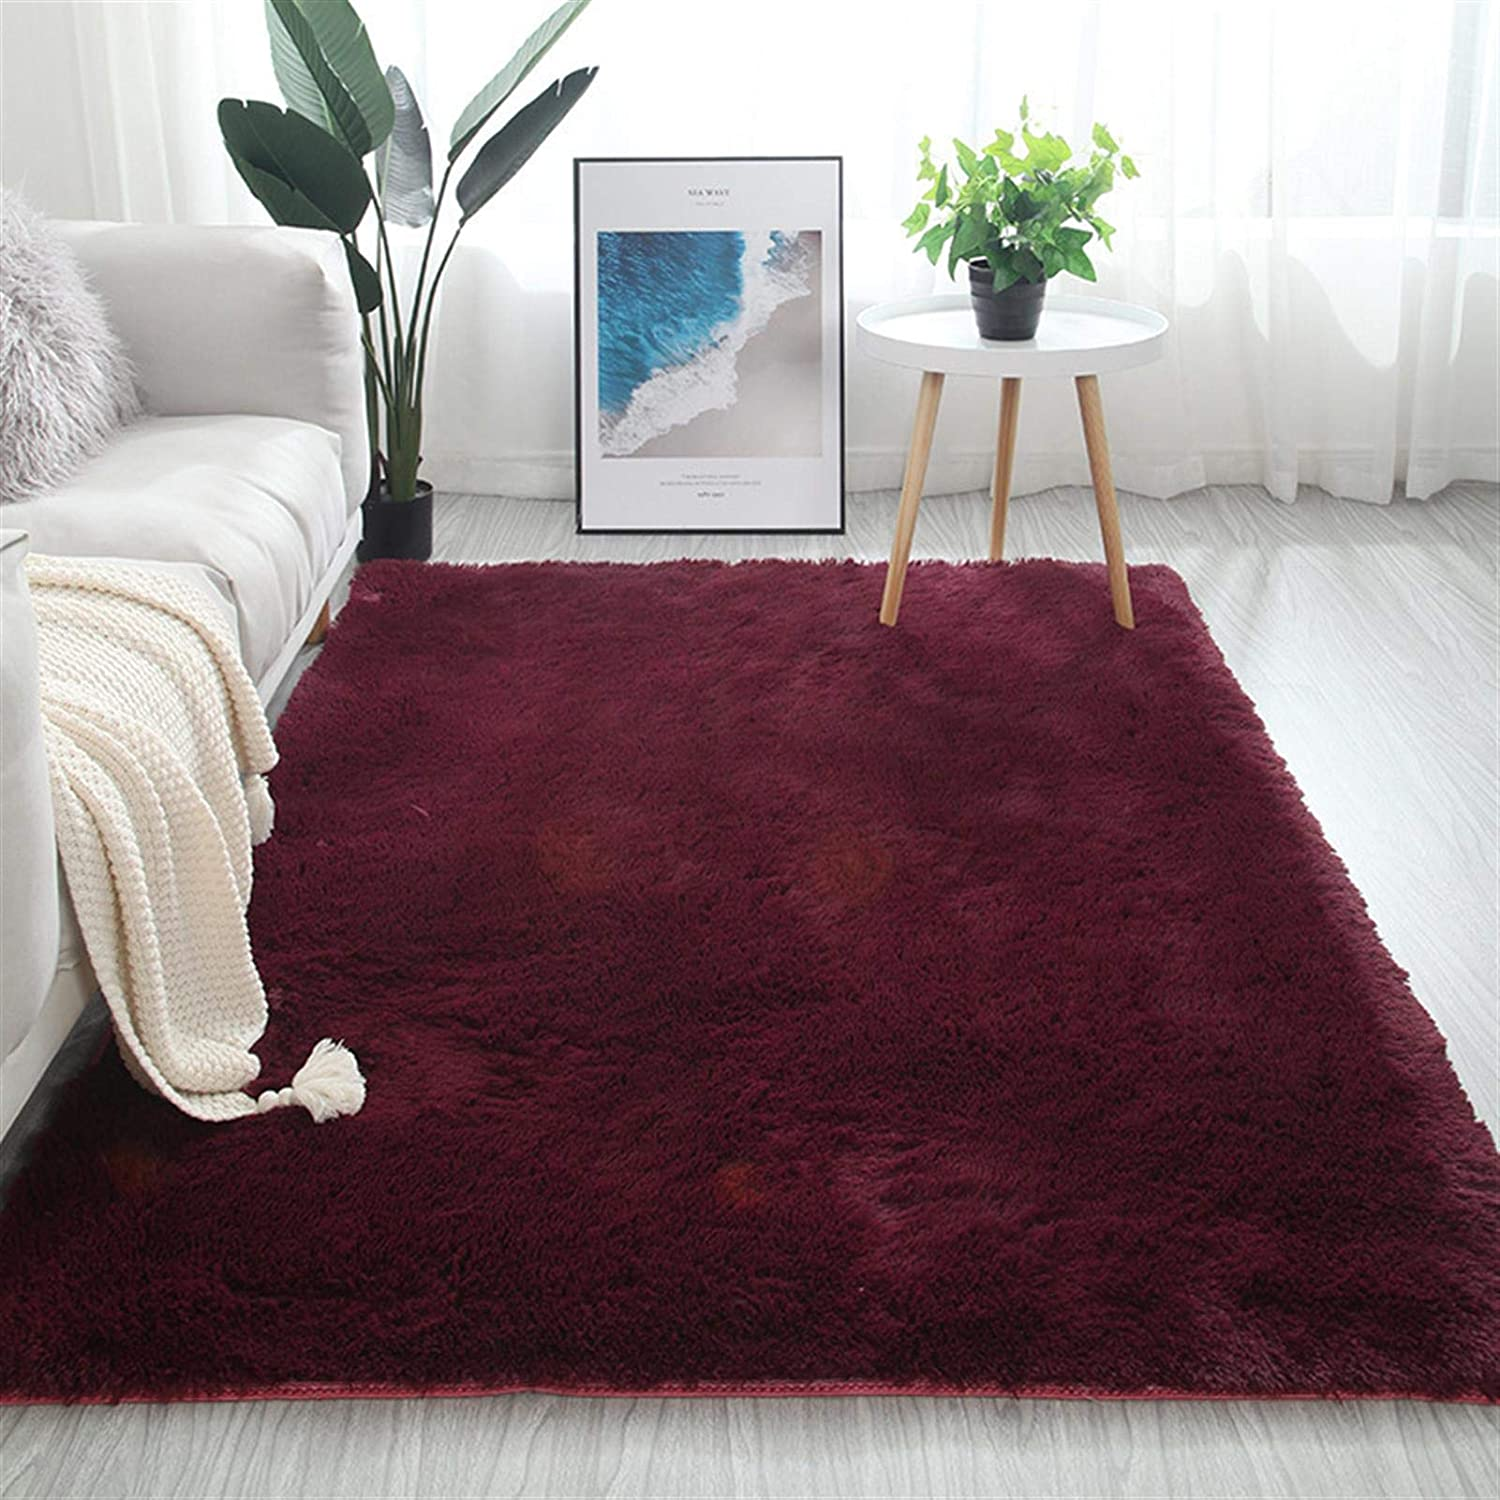 Rugs for Living Room Super Soft sale period limited Shaggy Topics on TV Plush Rug Modern Indoor